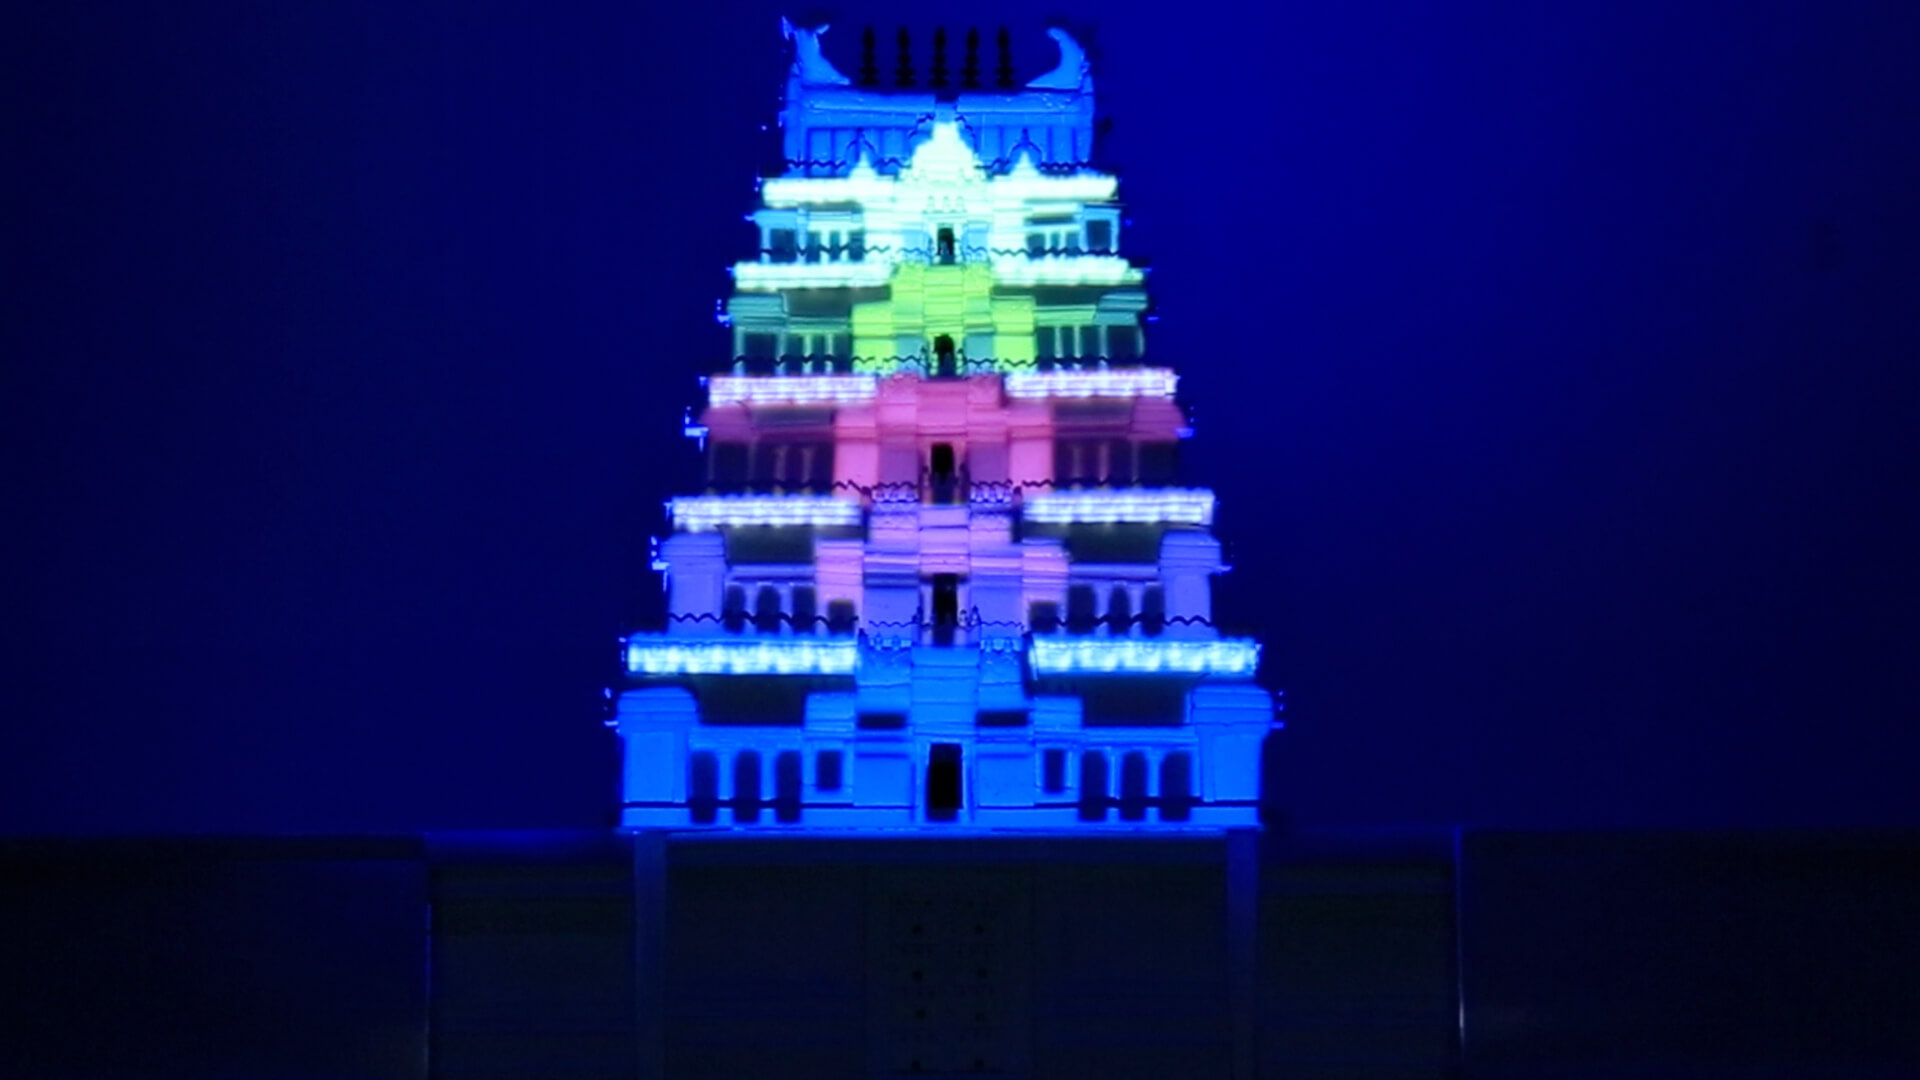 Temple projection mapping, immersive media, video mapping